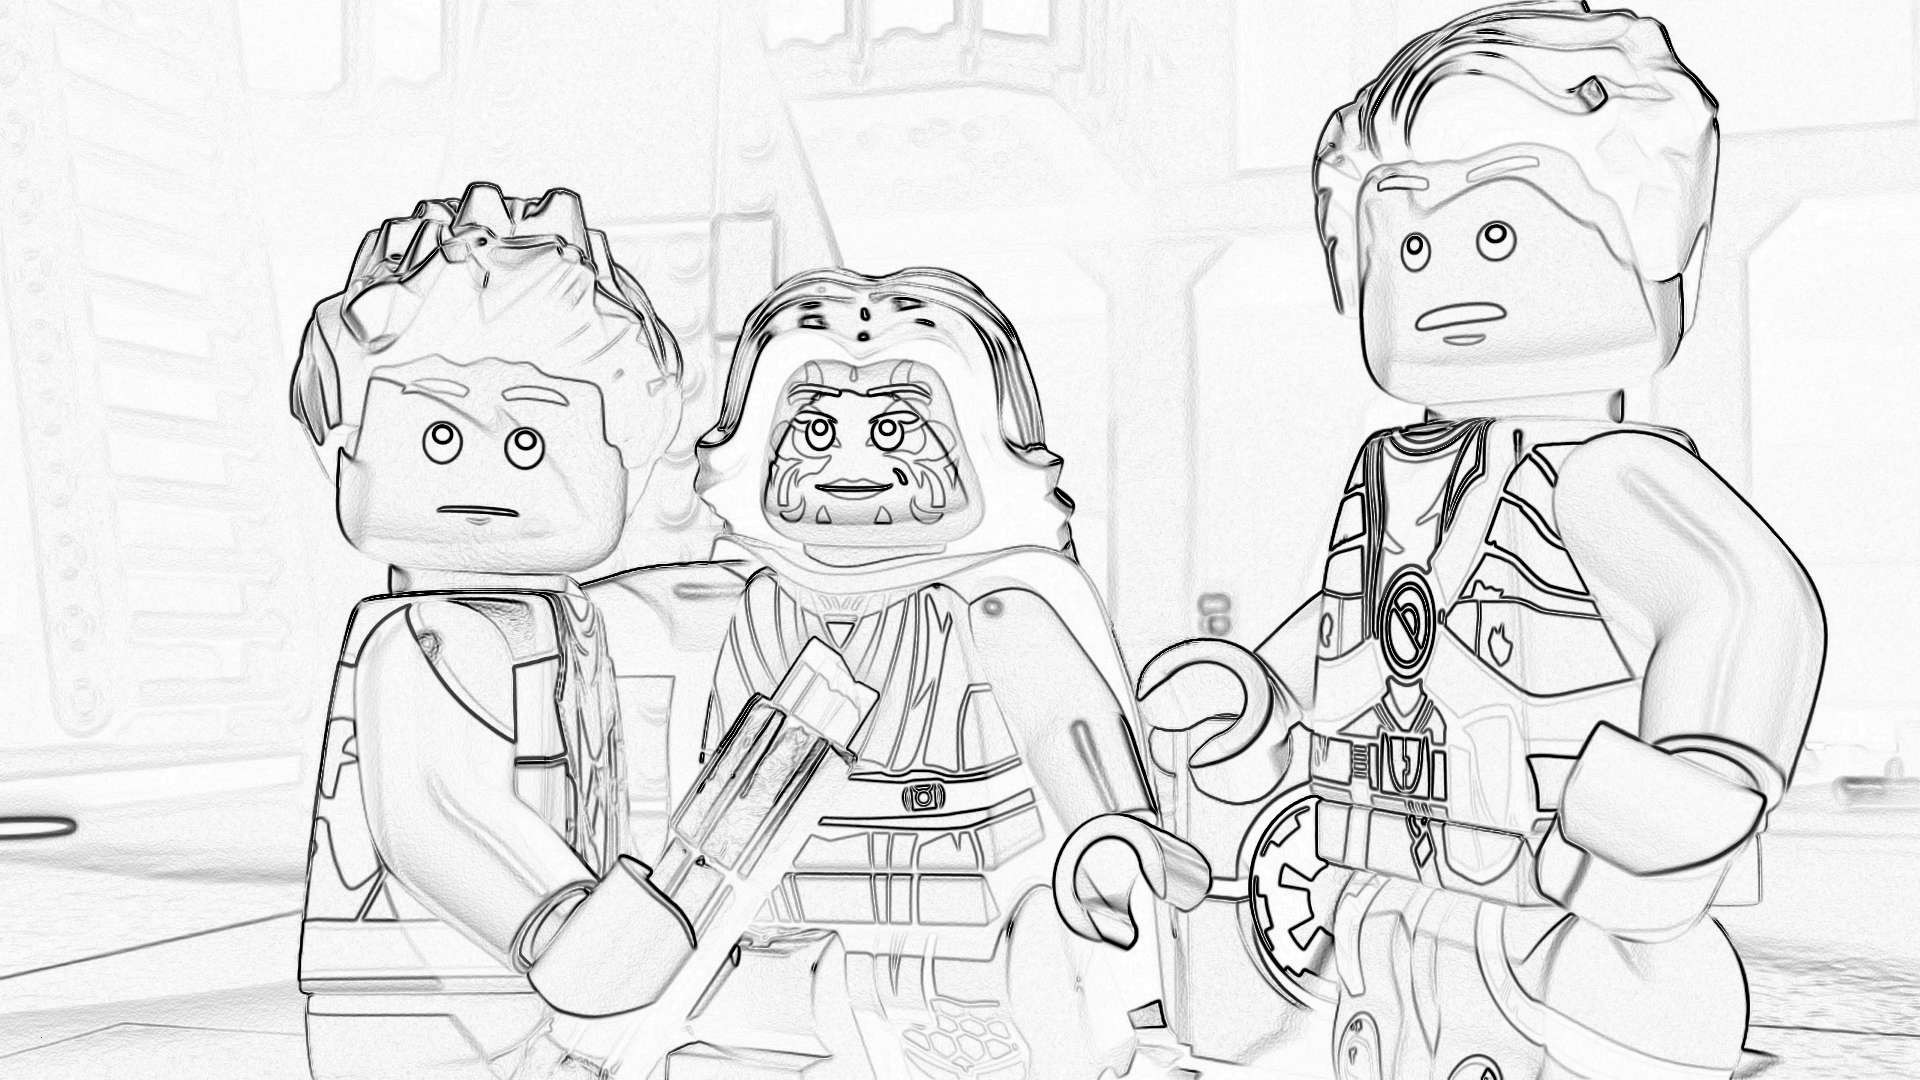 Lego Star Wars Ausmalbilder Frisch Lego Star Wars 3 Coloring Pages Free Lego Christmas Coloring Pages Galerie